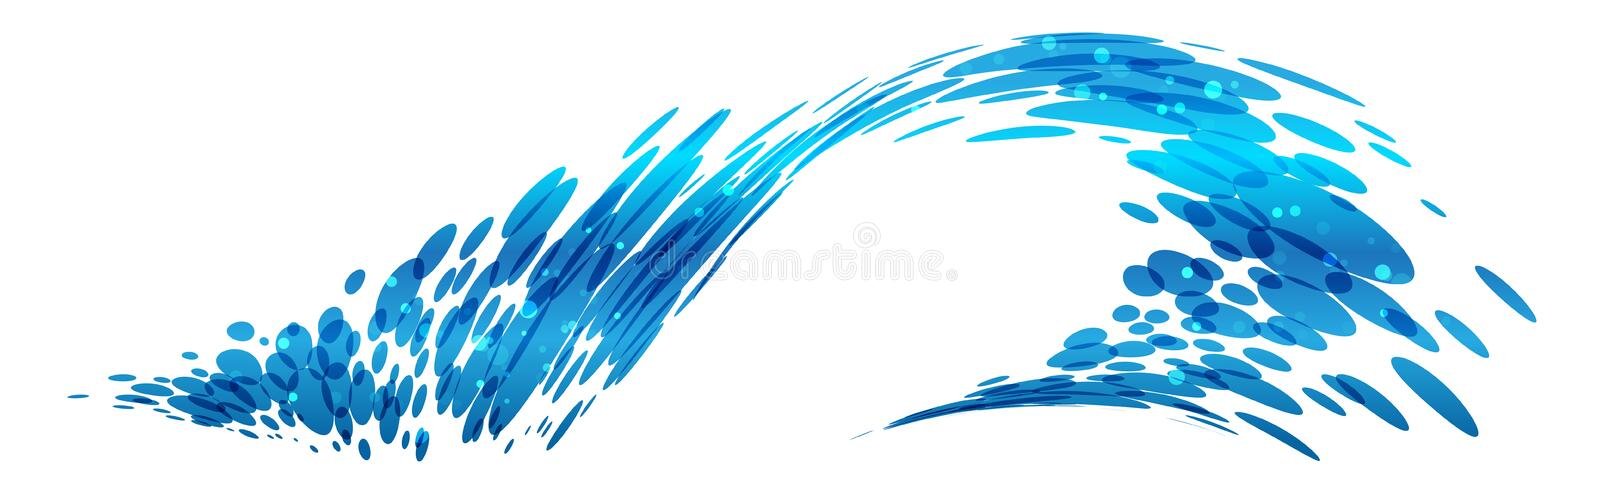 Wave design, stylized composition. Blue water royalty free illustration